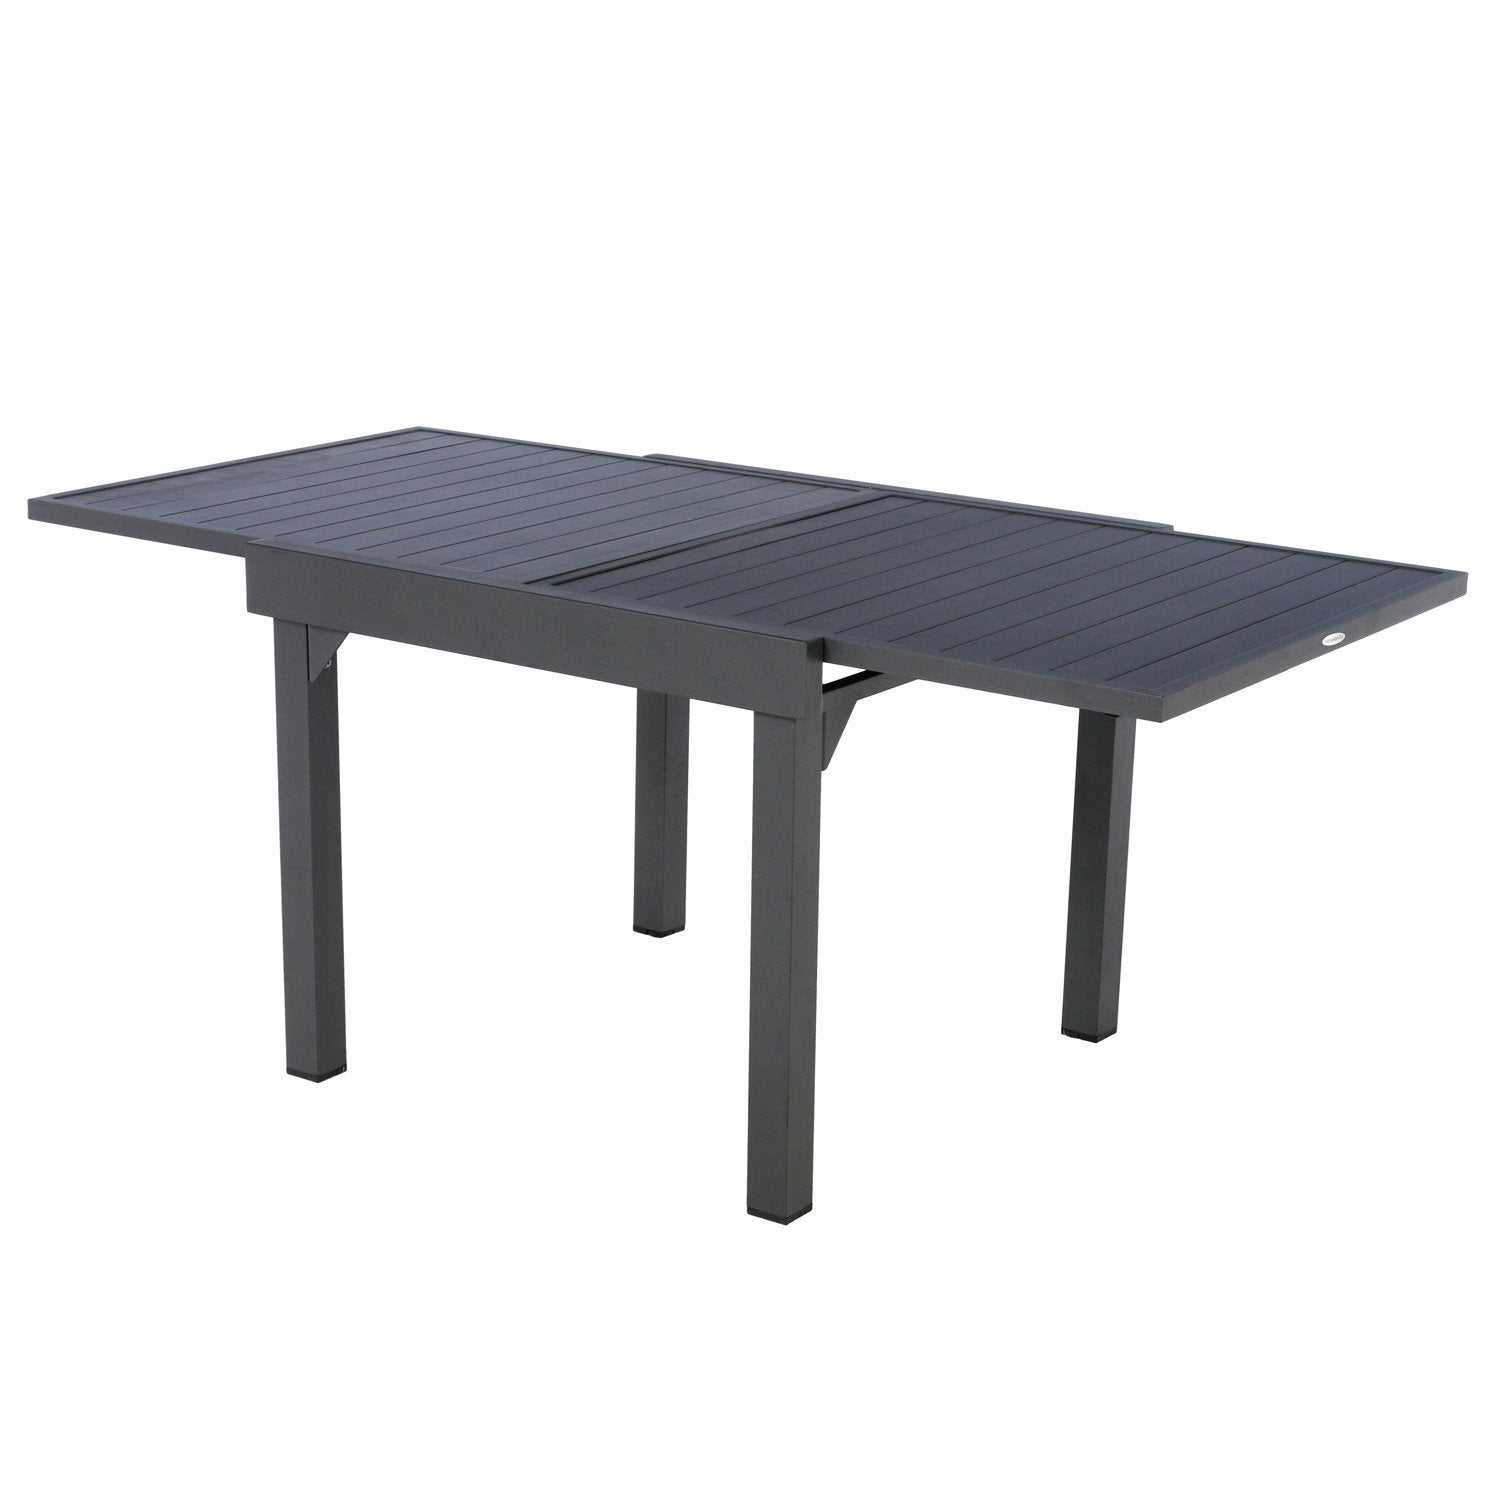 Table de jardin hesperide piazza rectangulaire gris 8 for Table extensible leroy merlin